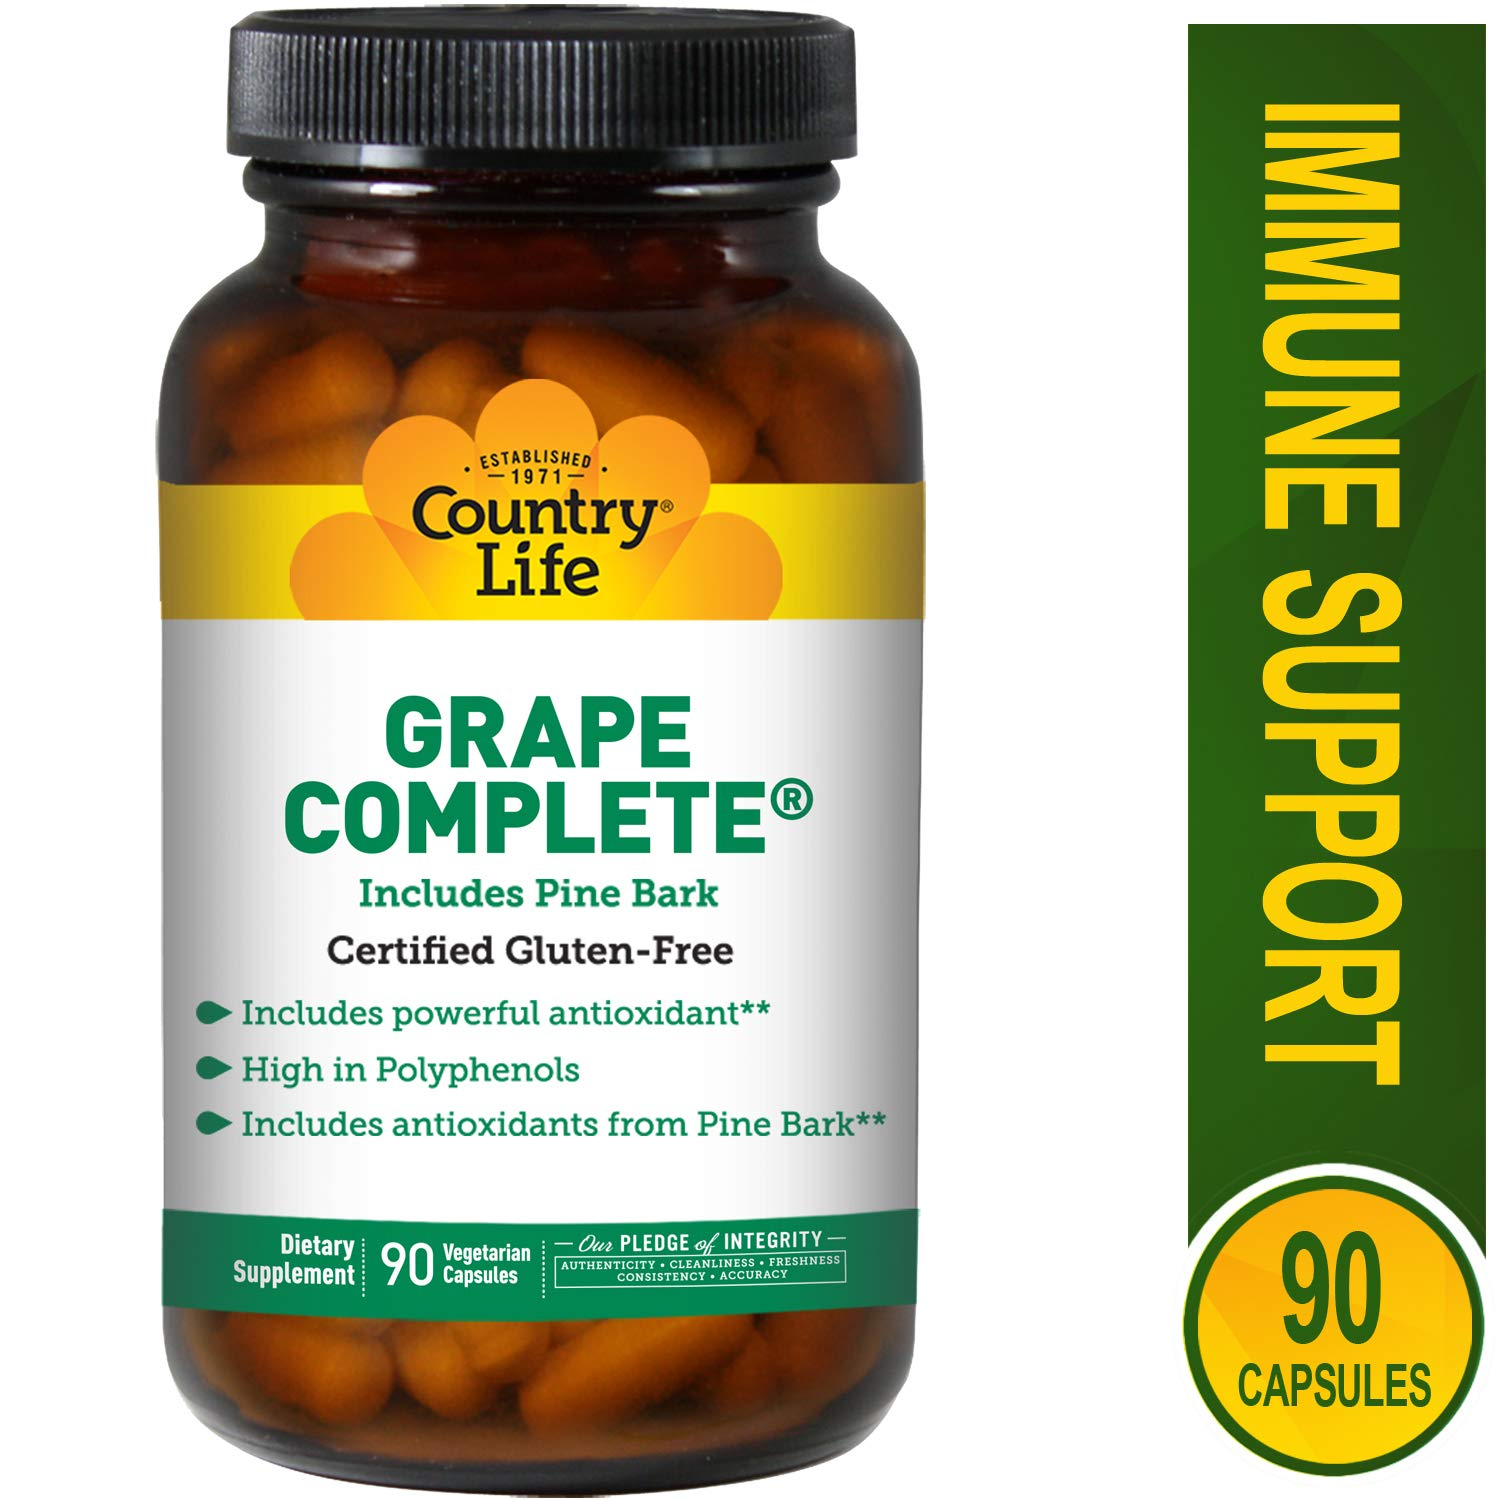 Country Life - Grape Complete with Pine Bark - 90 Vegetarian Capsules